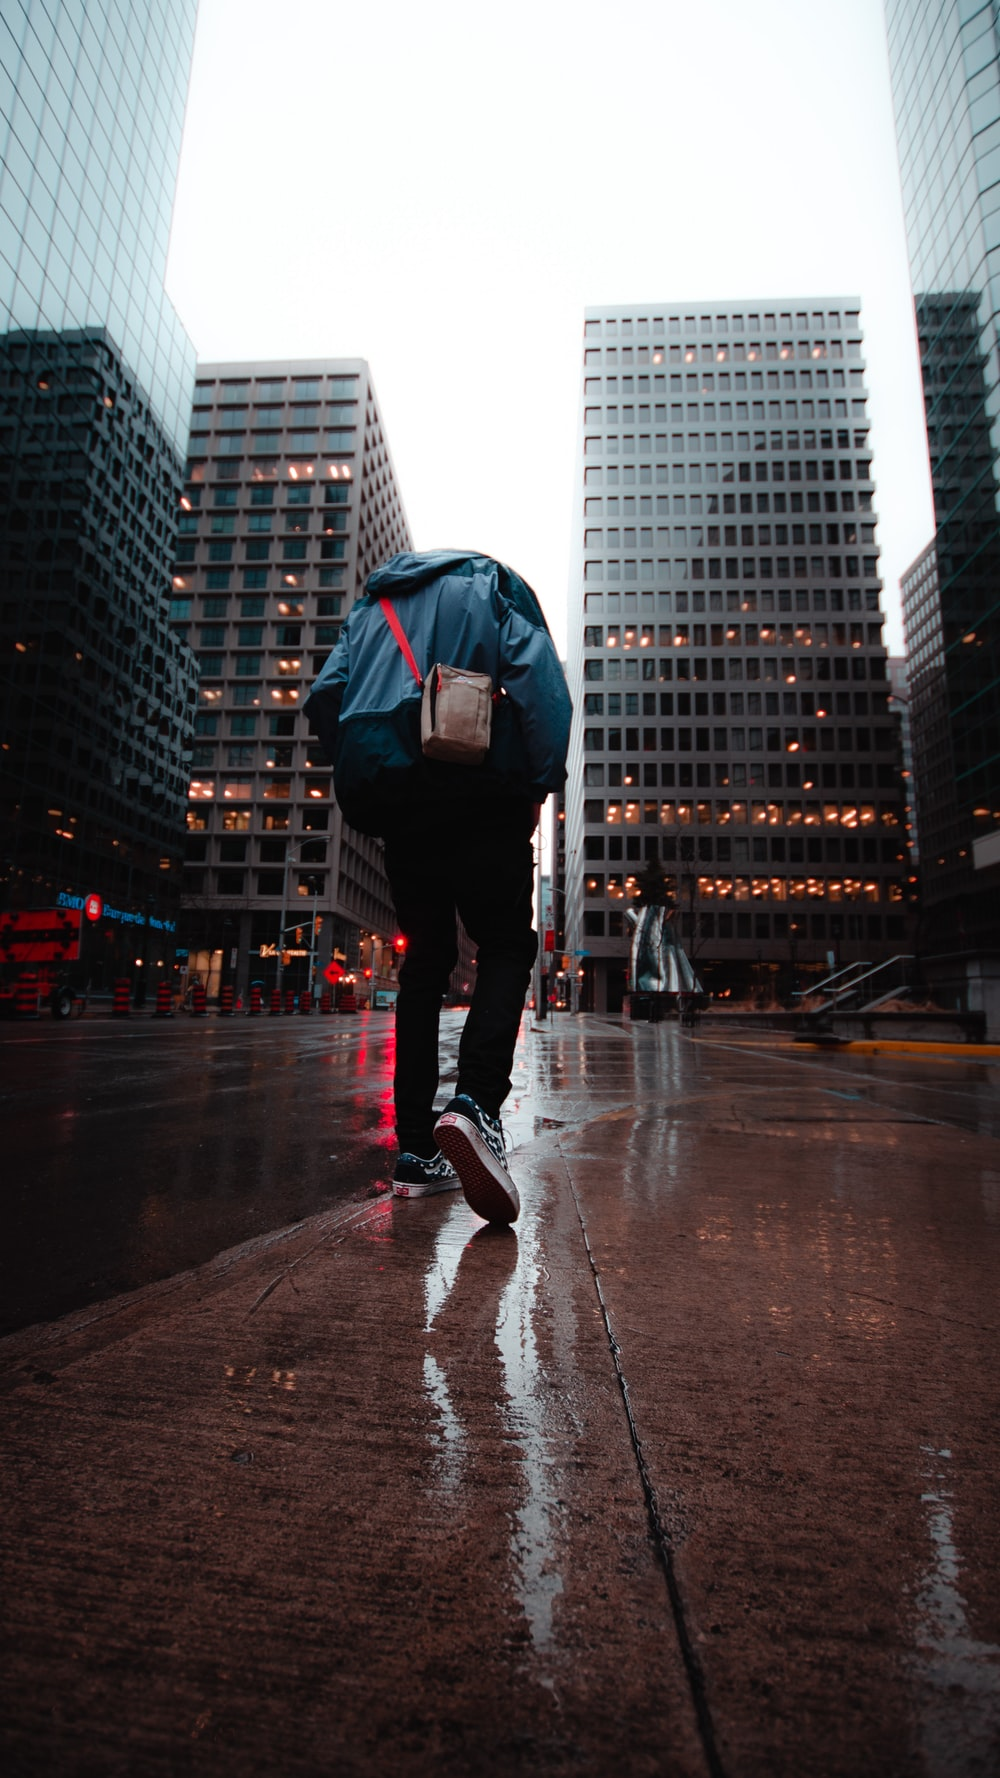 person walking on road near buildings during day